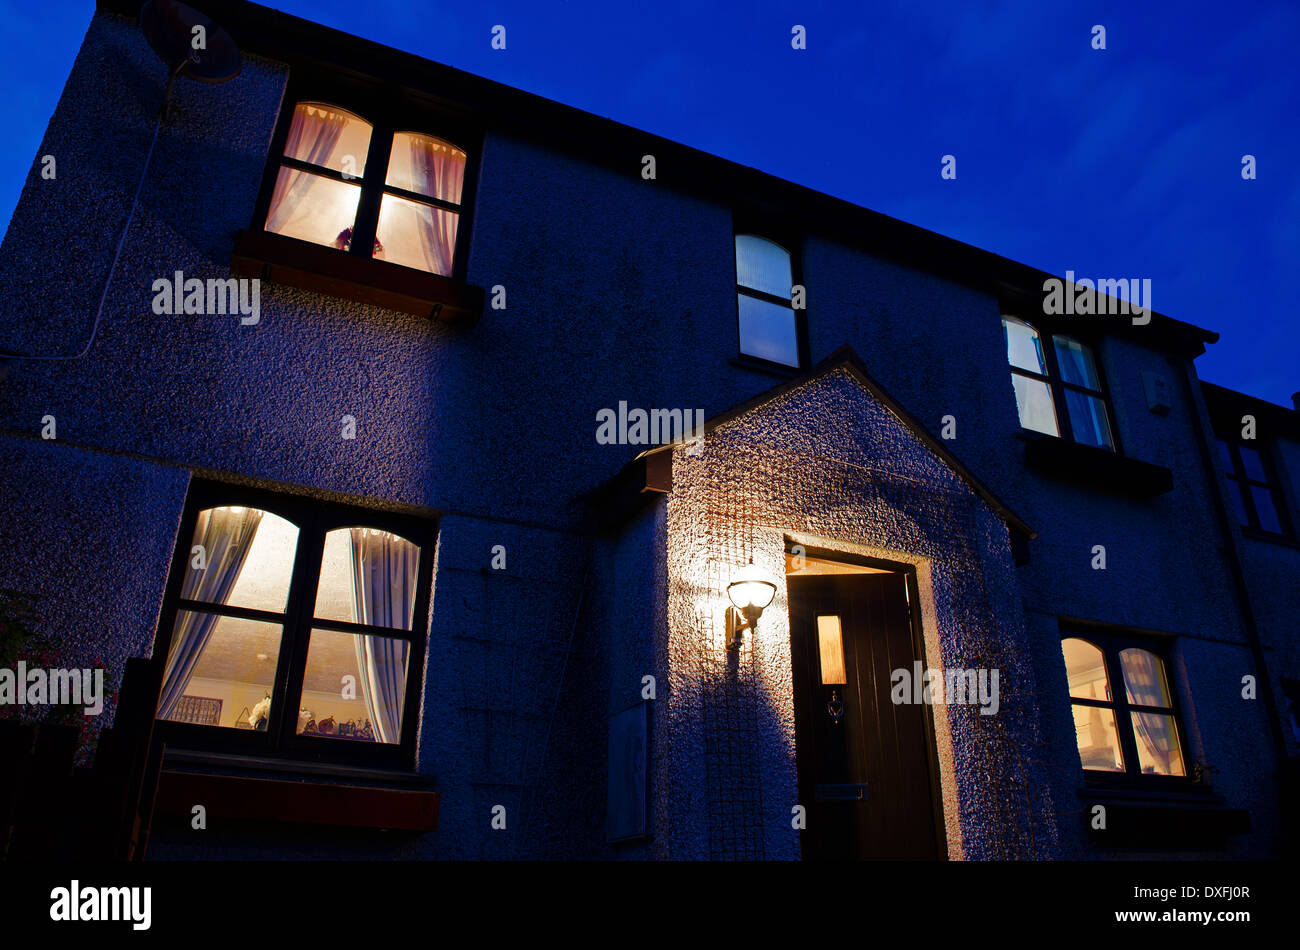 wasting electricity - Stock Image